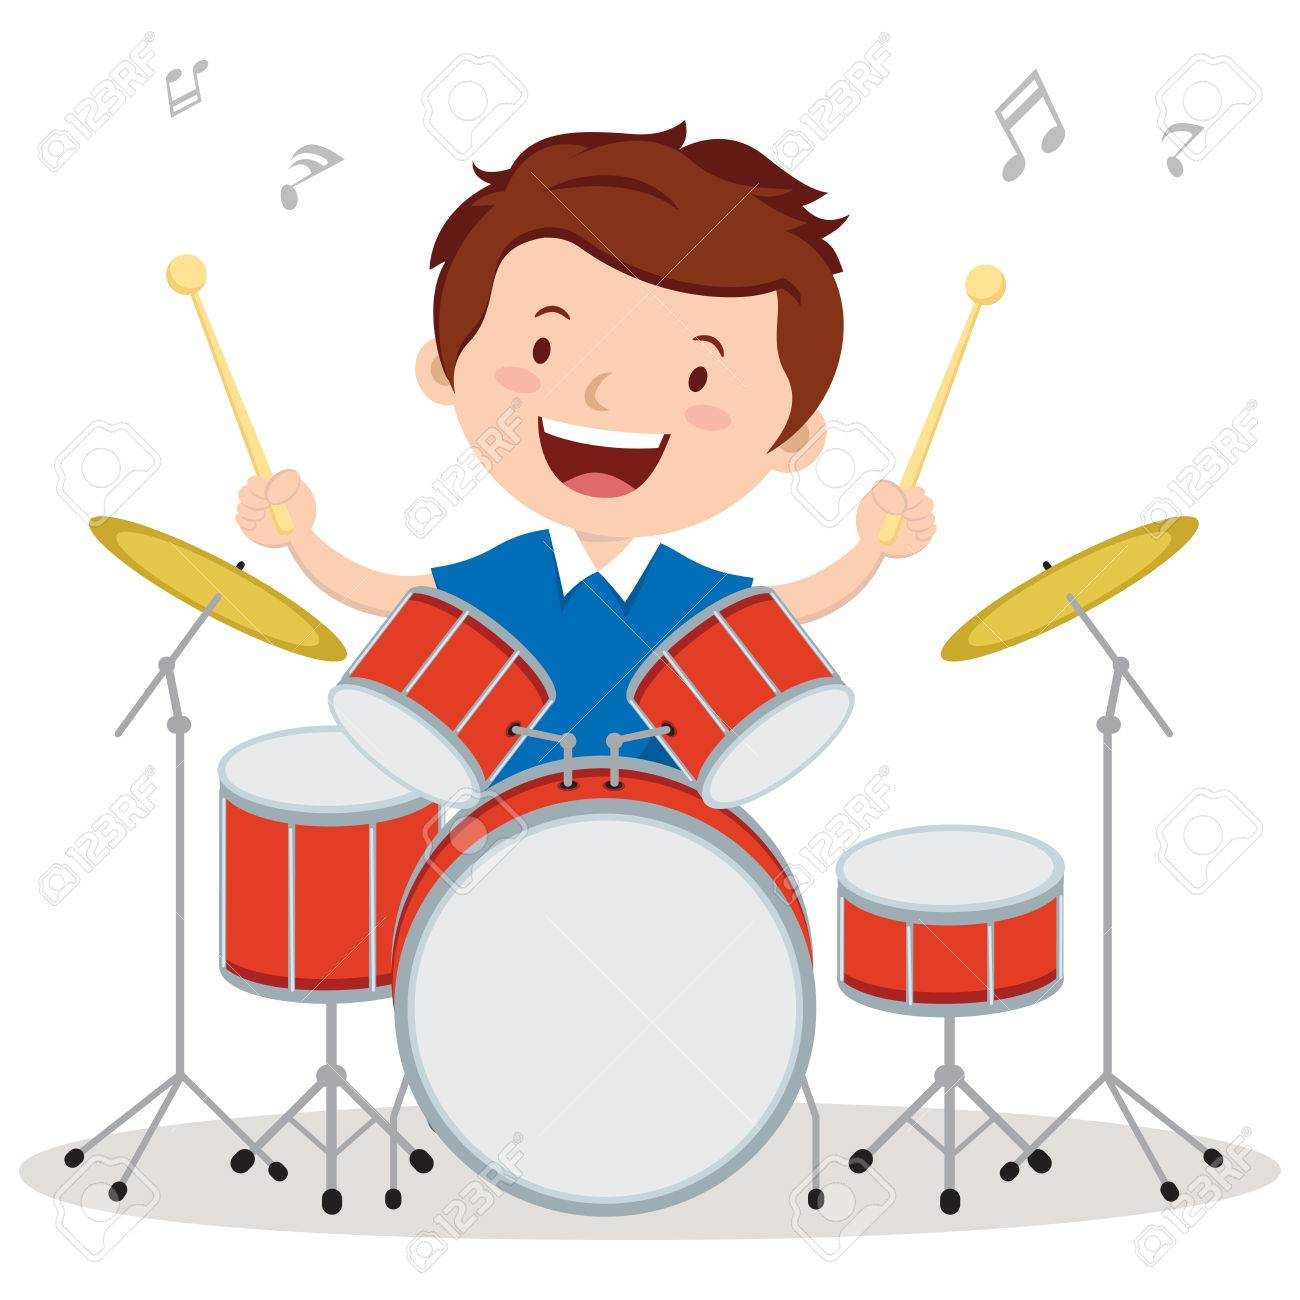 Little drummer. Vector illustration of a little boy playing drums..